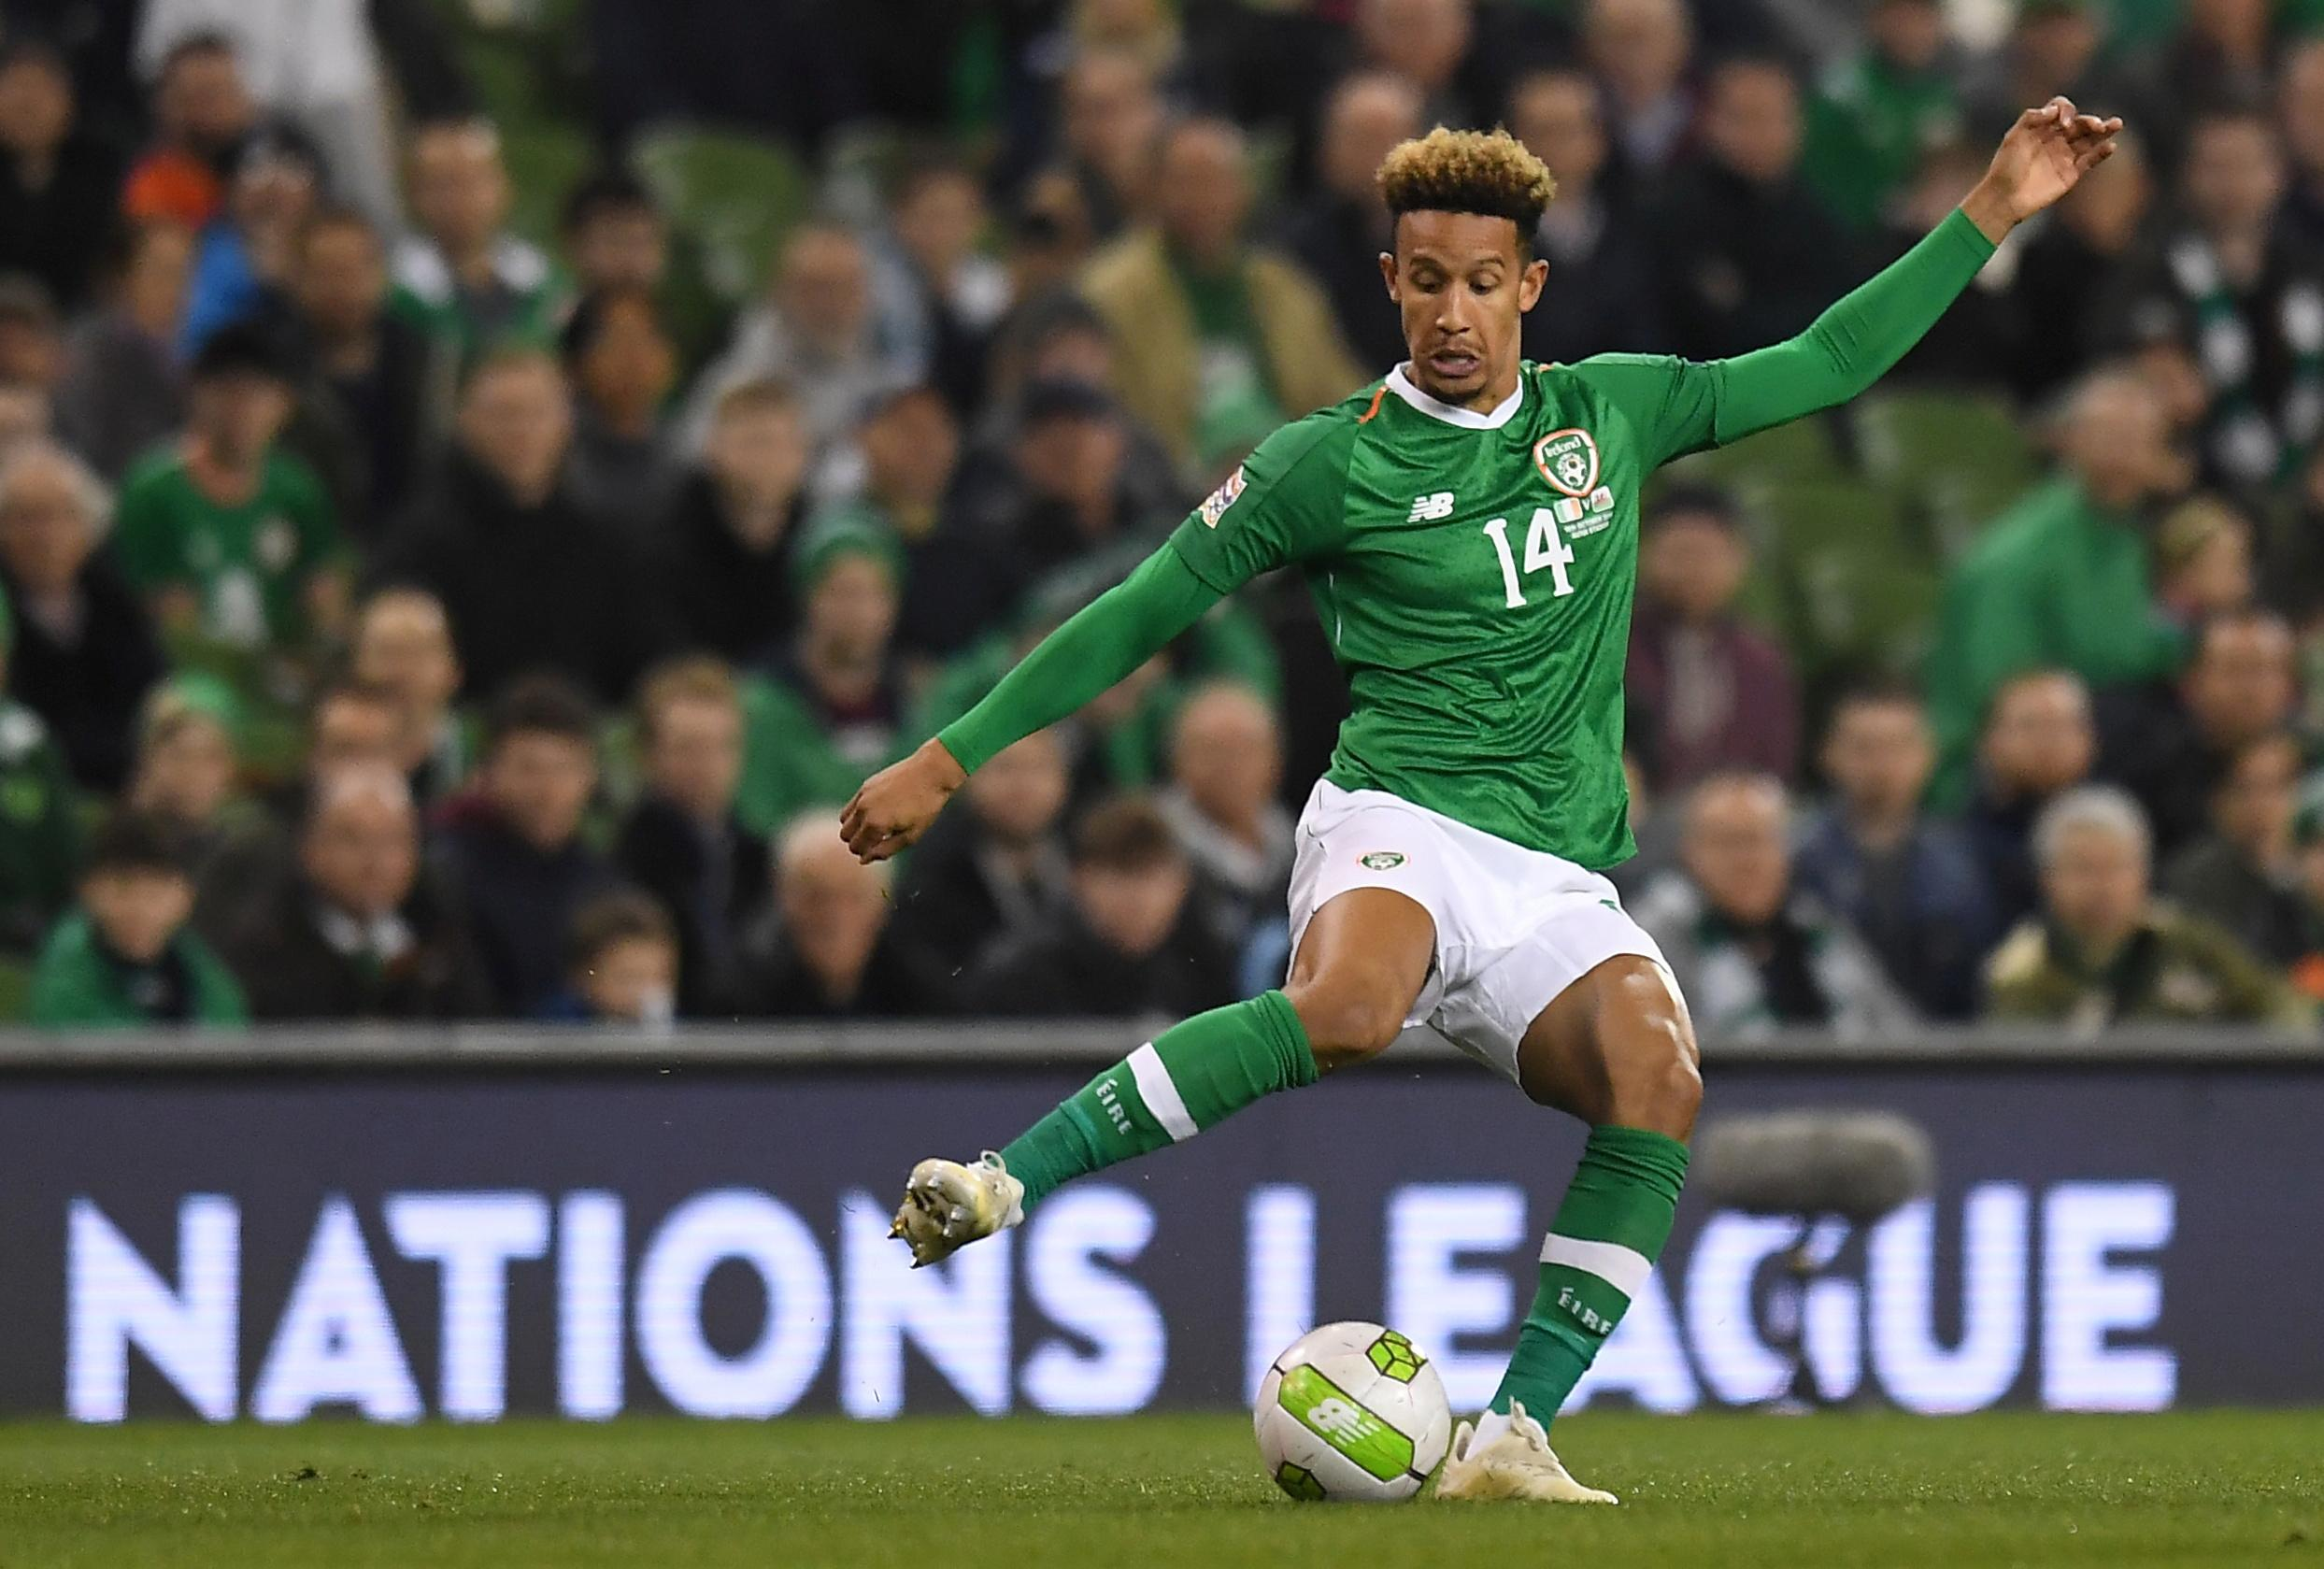 Sheffield United sign Ireland striker Robinson from Preston